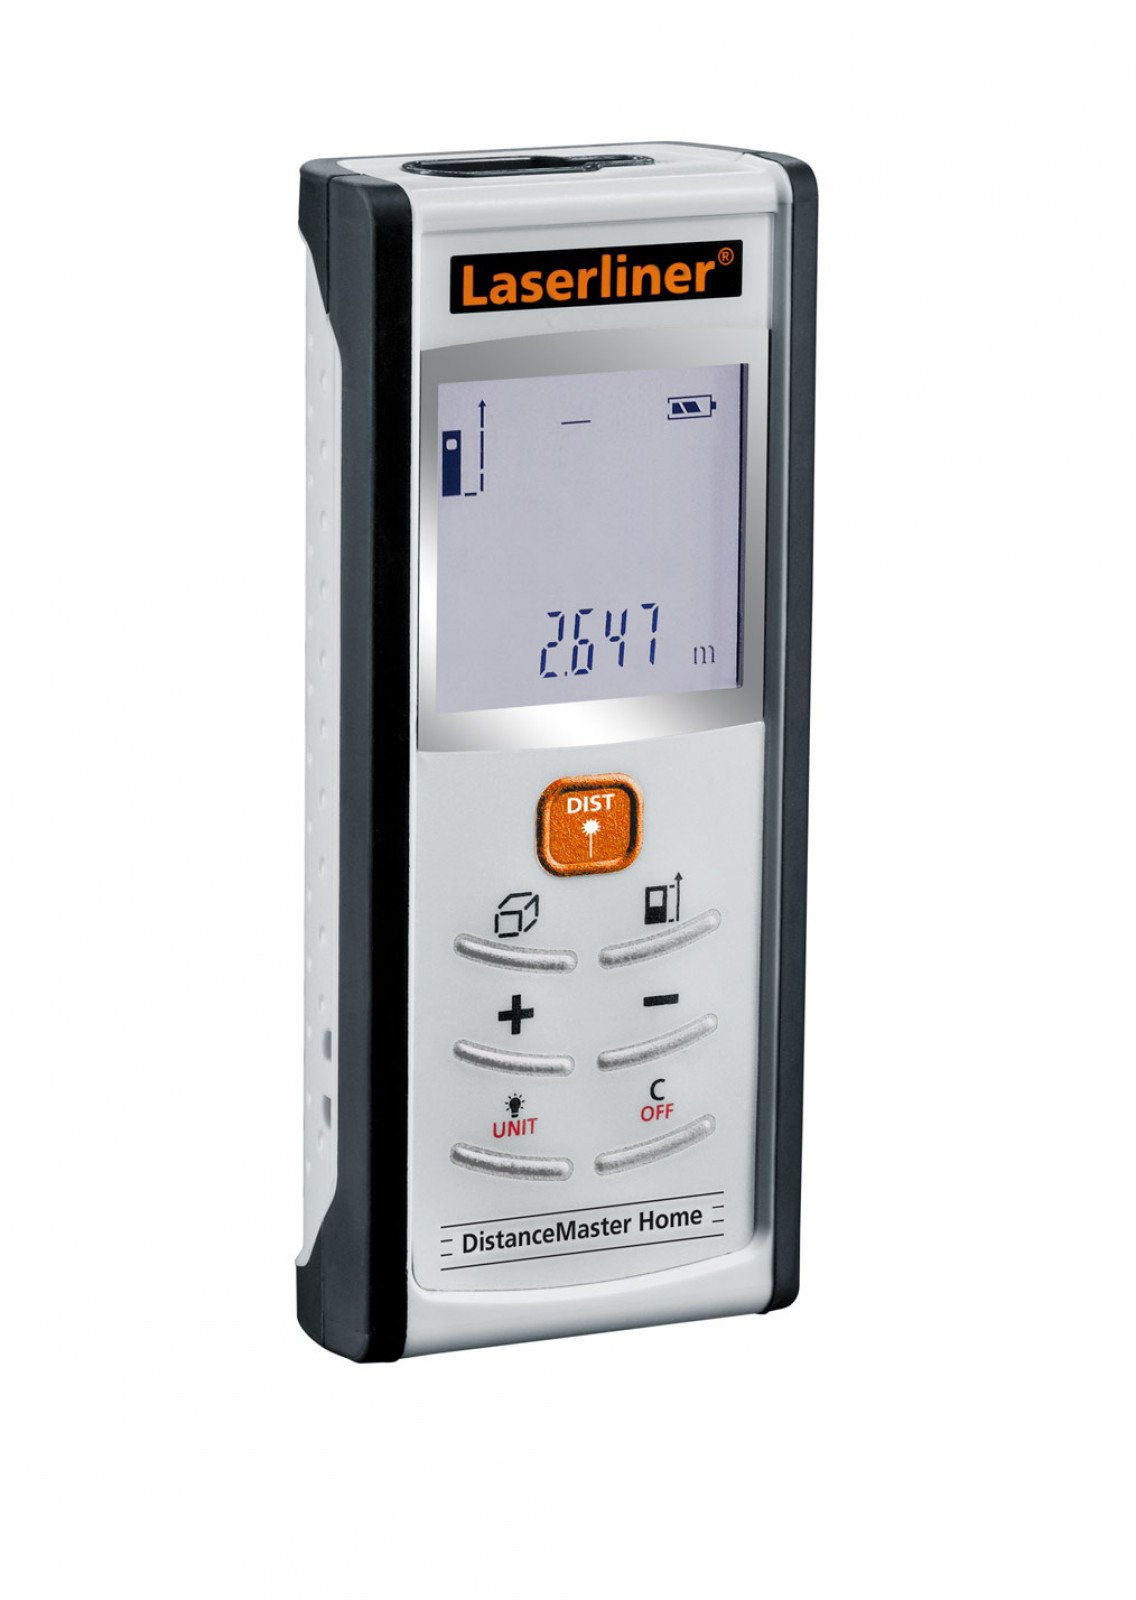 Etäisyysmittari Laserliner DistanceMaster Home